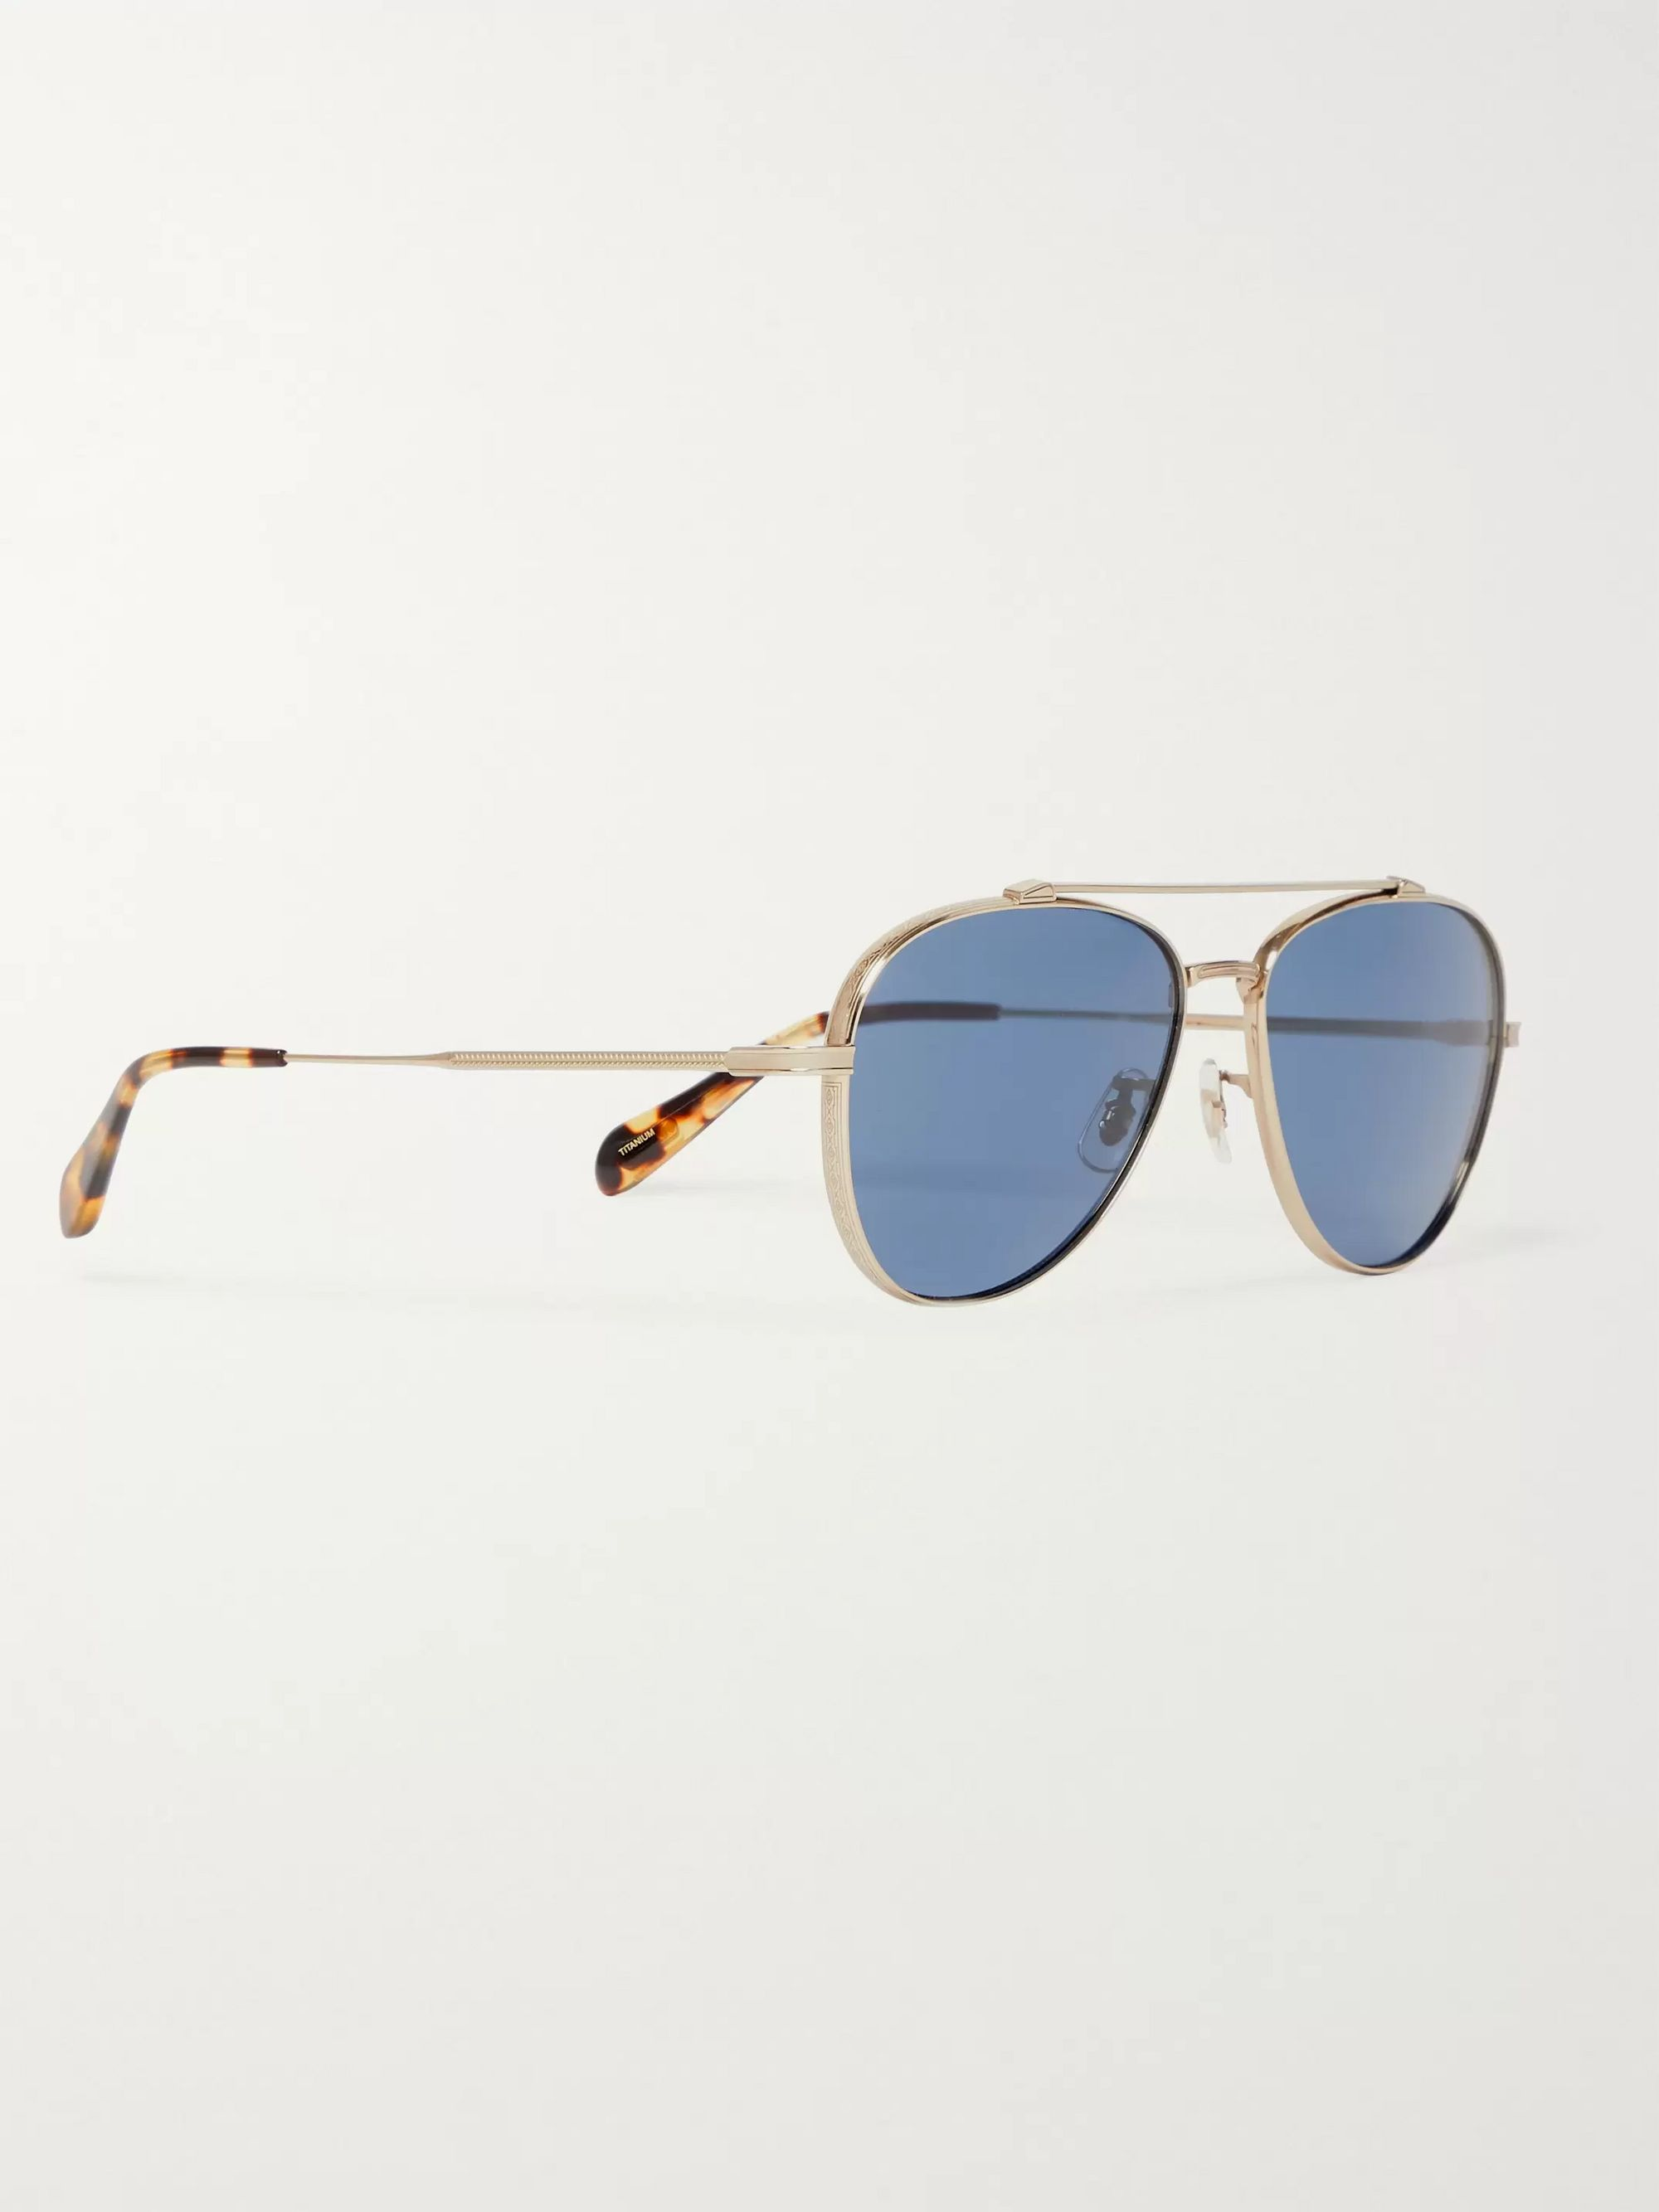 Oliver Peoples Rikson Aviator-Style Silver-Tone Titanium and Tortoiseshell Acetate Sunglasses